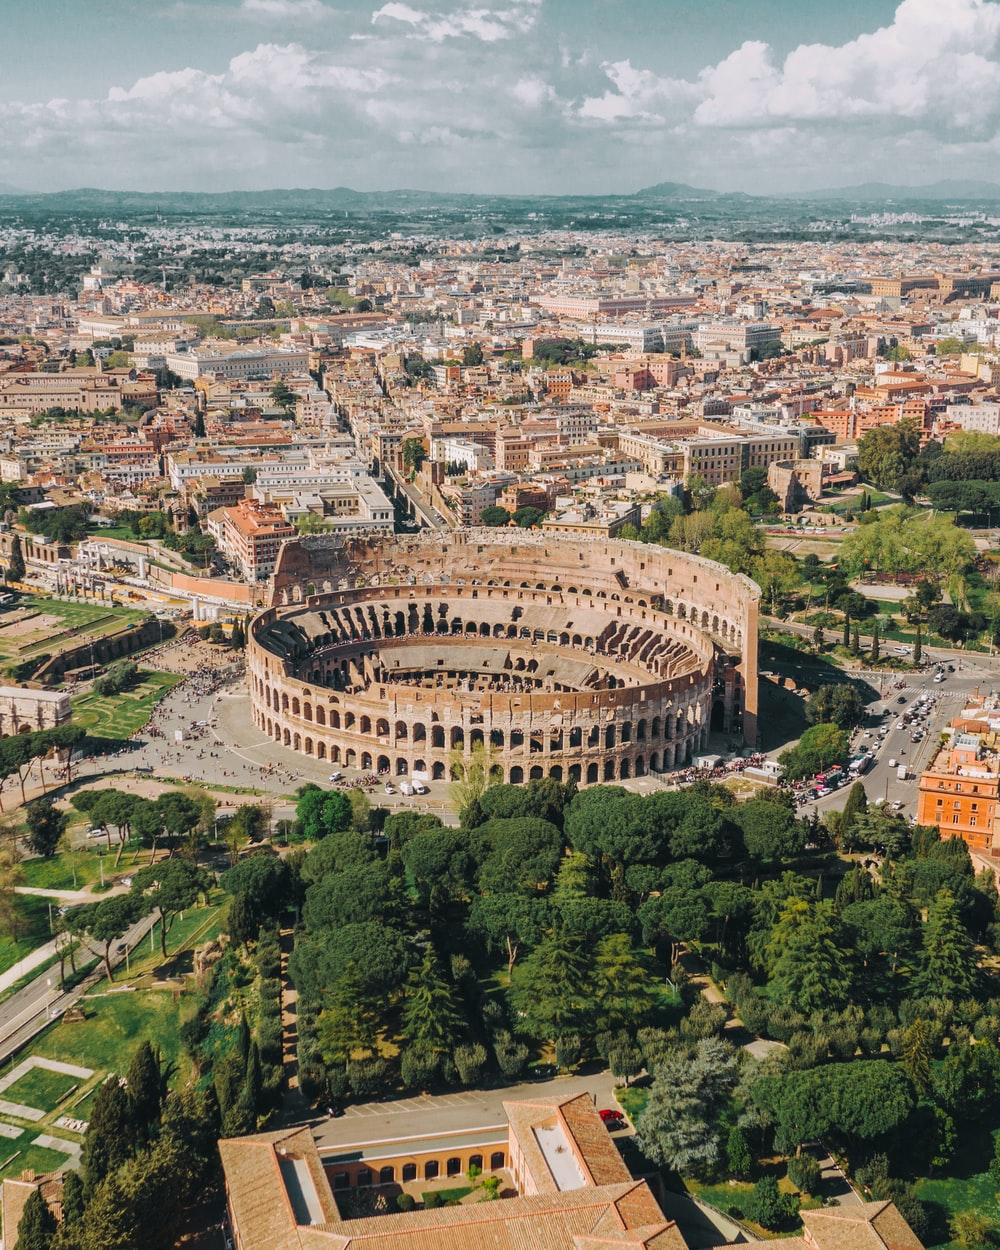 aerial view of Colosseum at Rome Italy